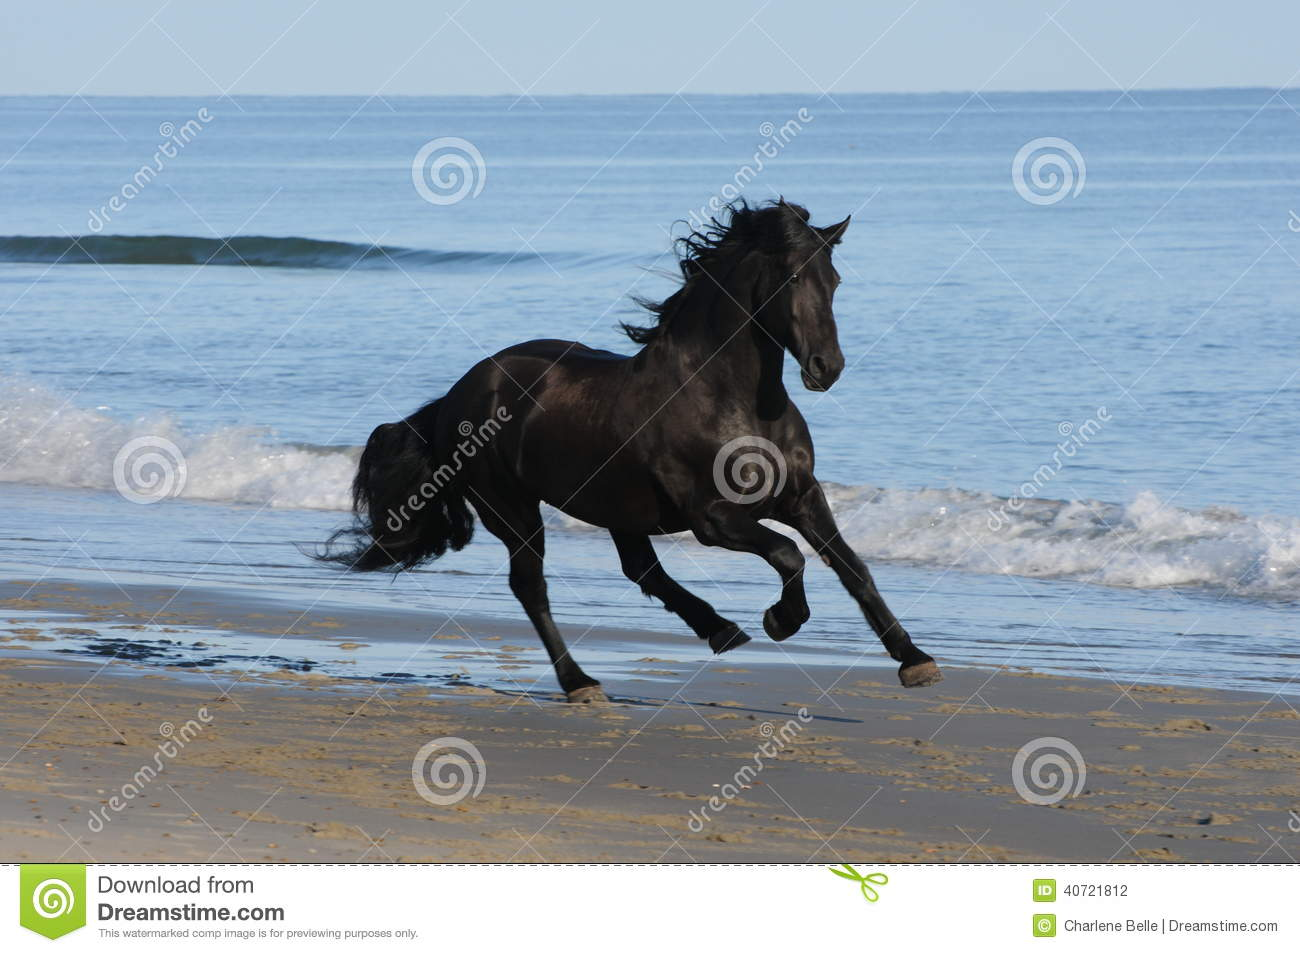 A Horse Is Running On The Beach Stock Photo - Image: 40721812